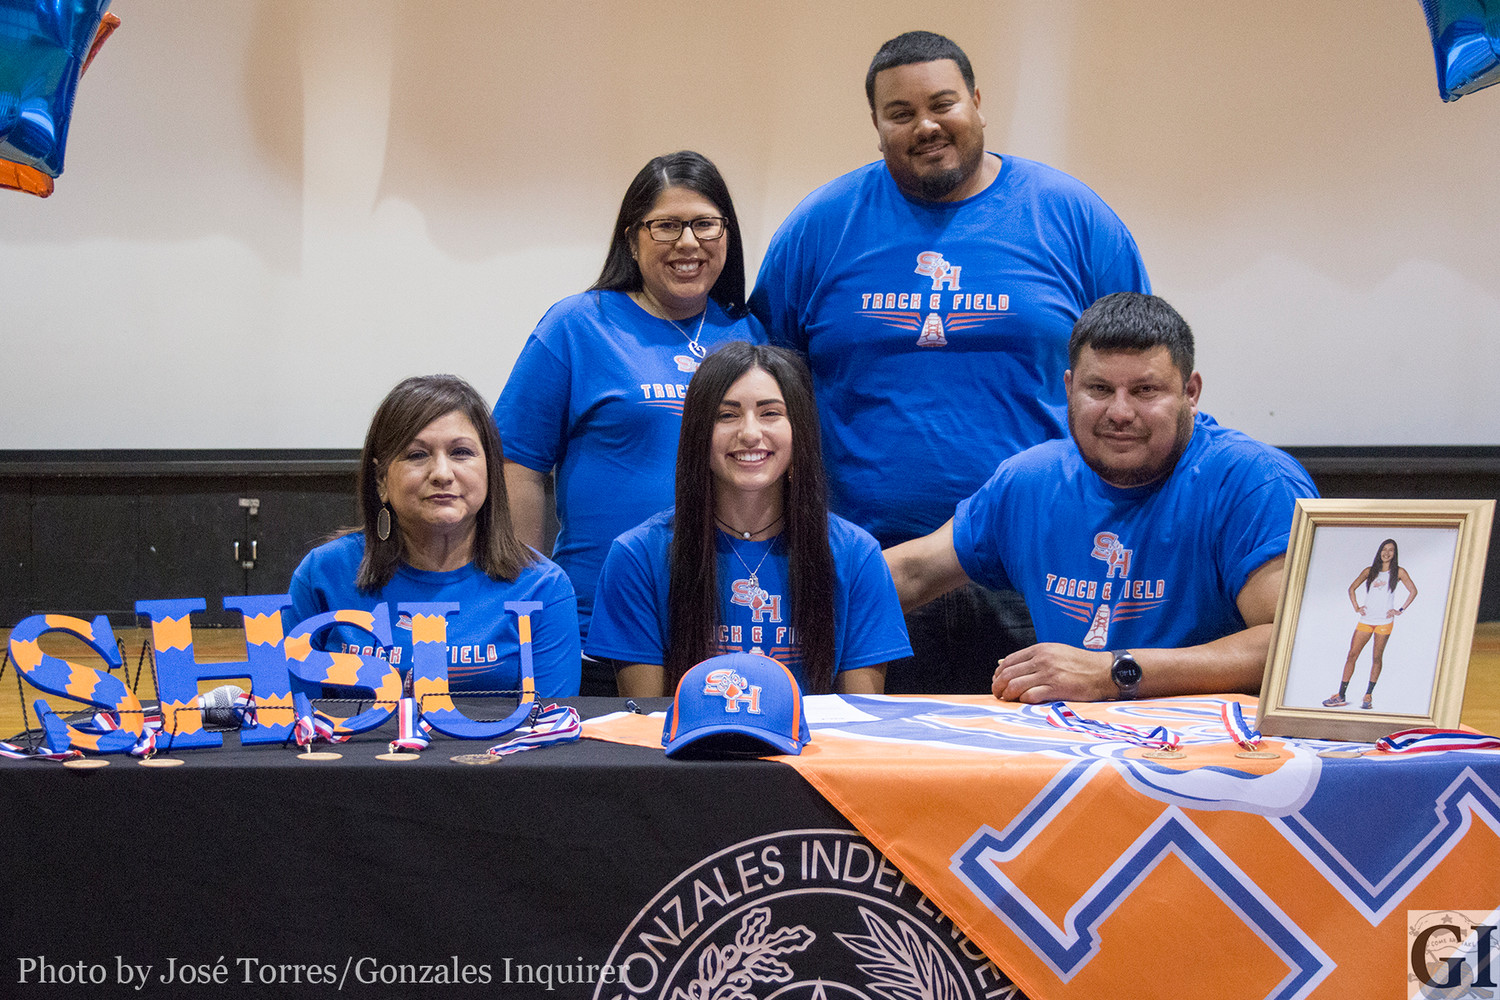 Haley Garza signed on Wednesday to Sam Houston State University to continue her long-distance running career.